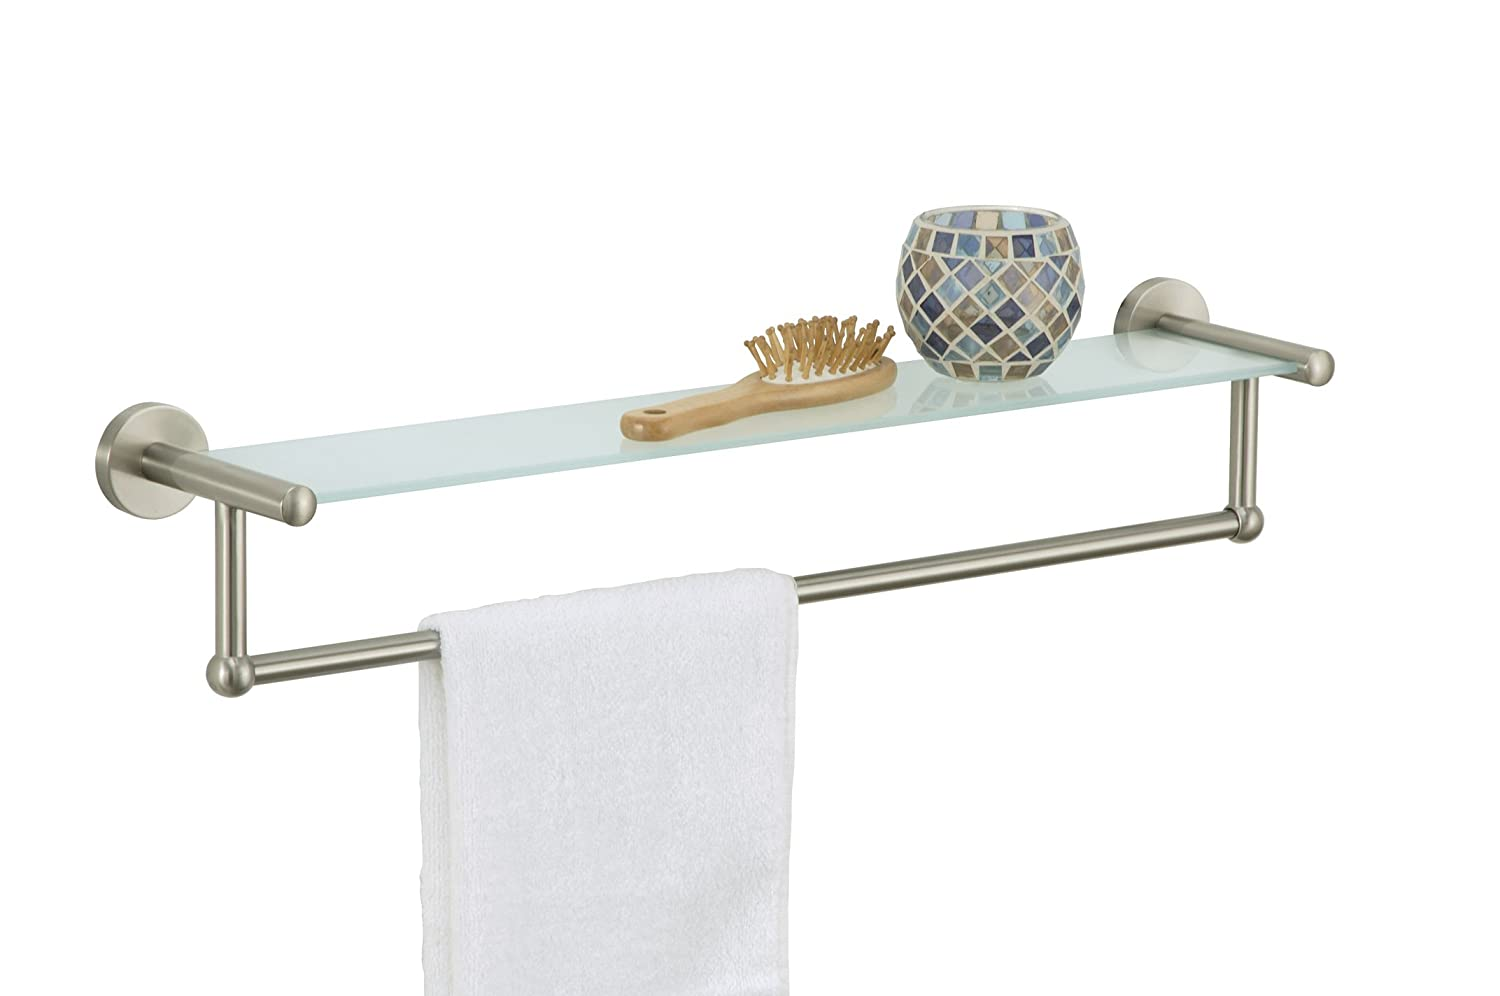 Amazon.com: Organize It All Satin Nickel Glass Shelf With Towel Bar: Home U0026  Kitchen